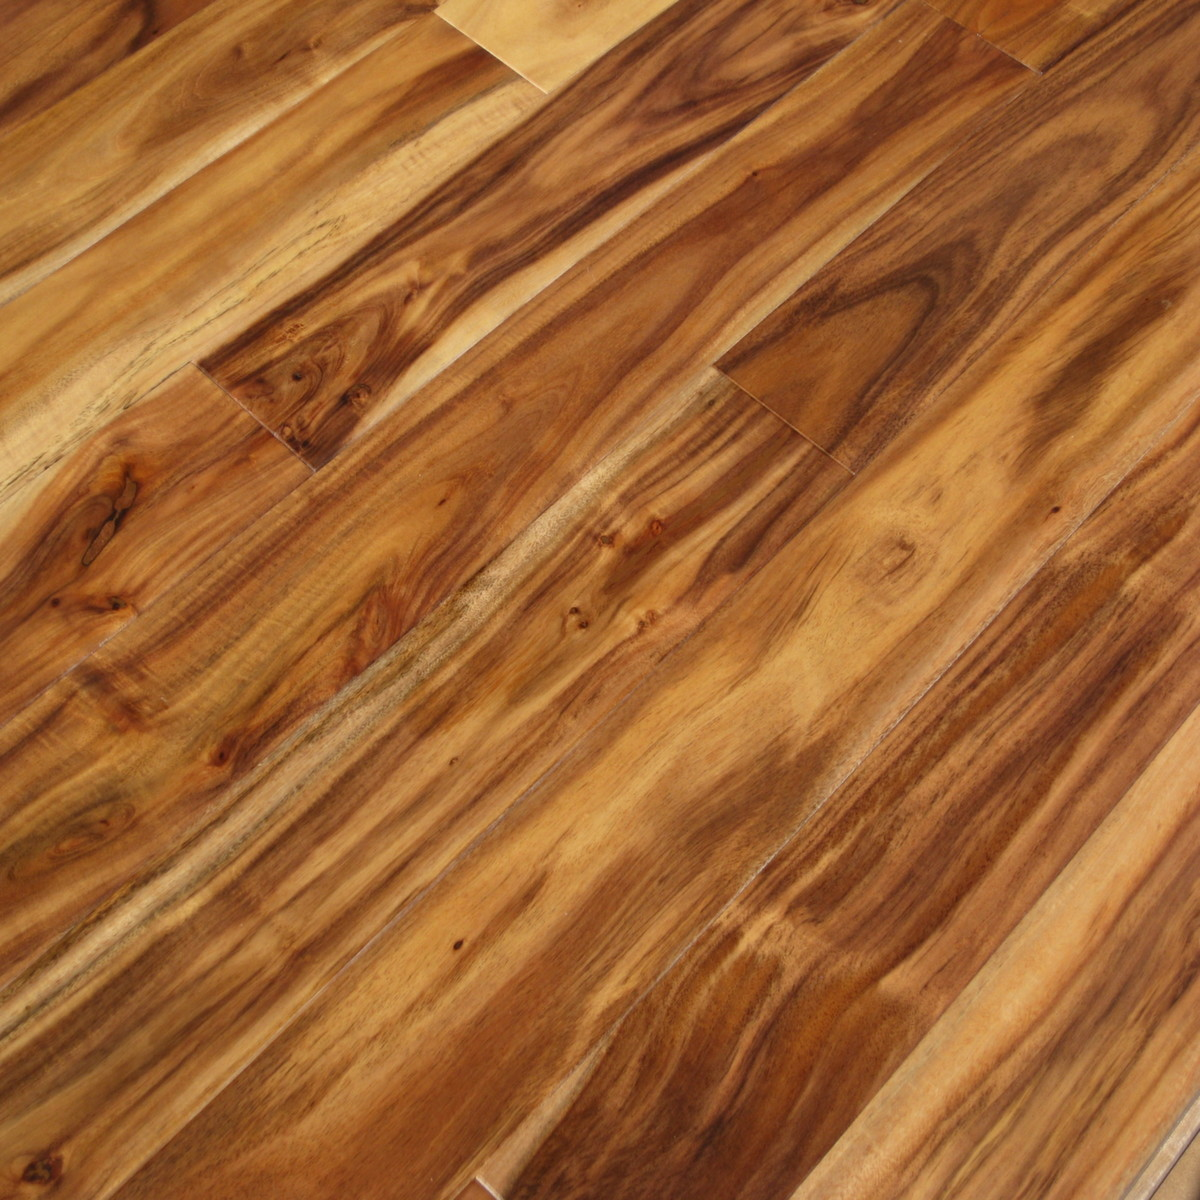 Acacia natural hand scraped hardwood flooring unique for Hardwood plank flooring